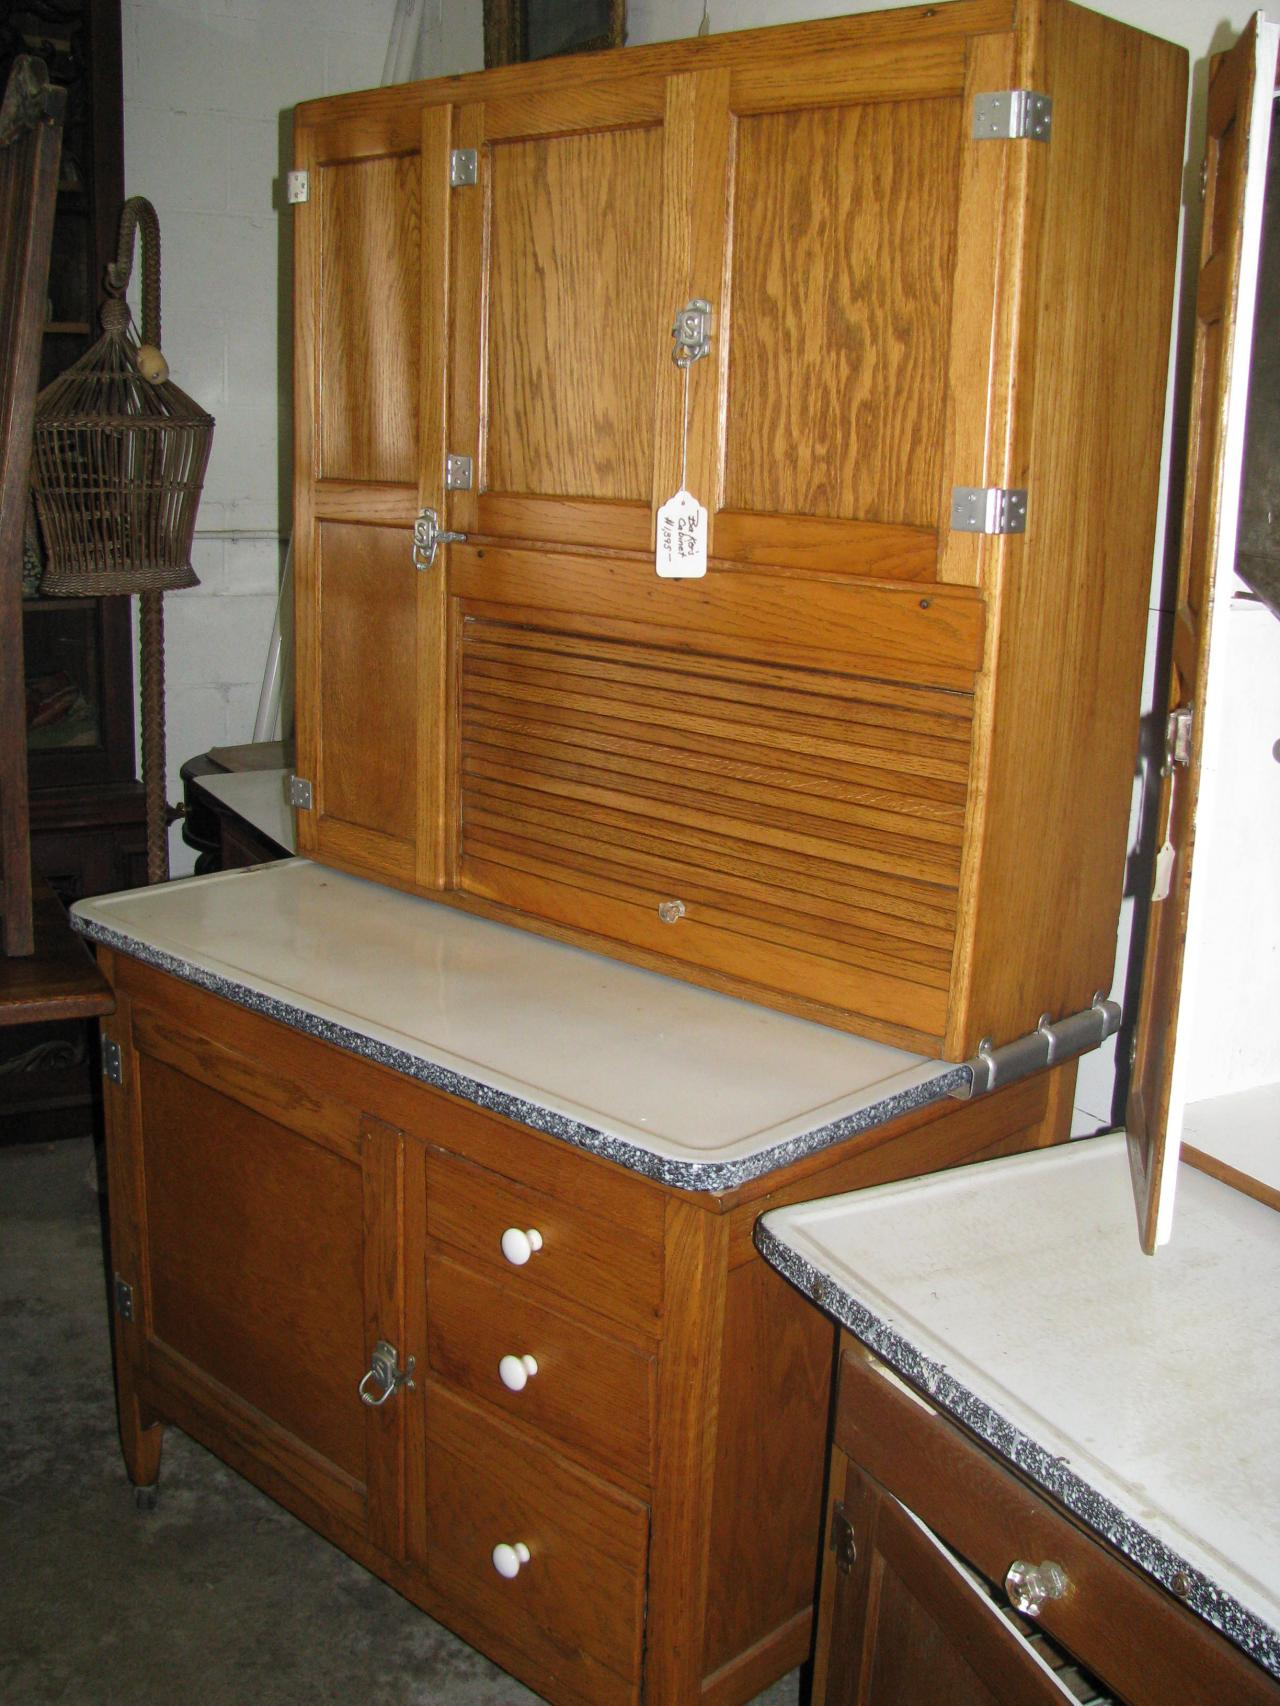 Beau ... Sellers Hoosier Cabinet; Sellers Oak Bakers Cabinet Circa 1916 1920 ...